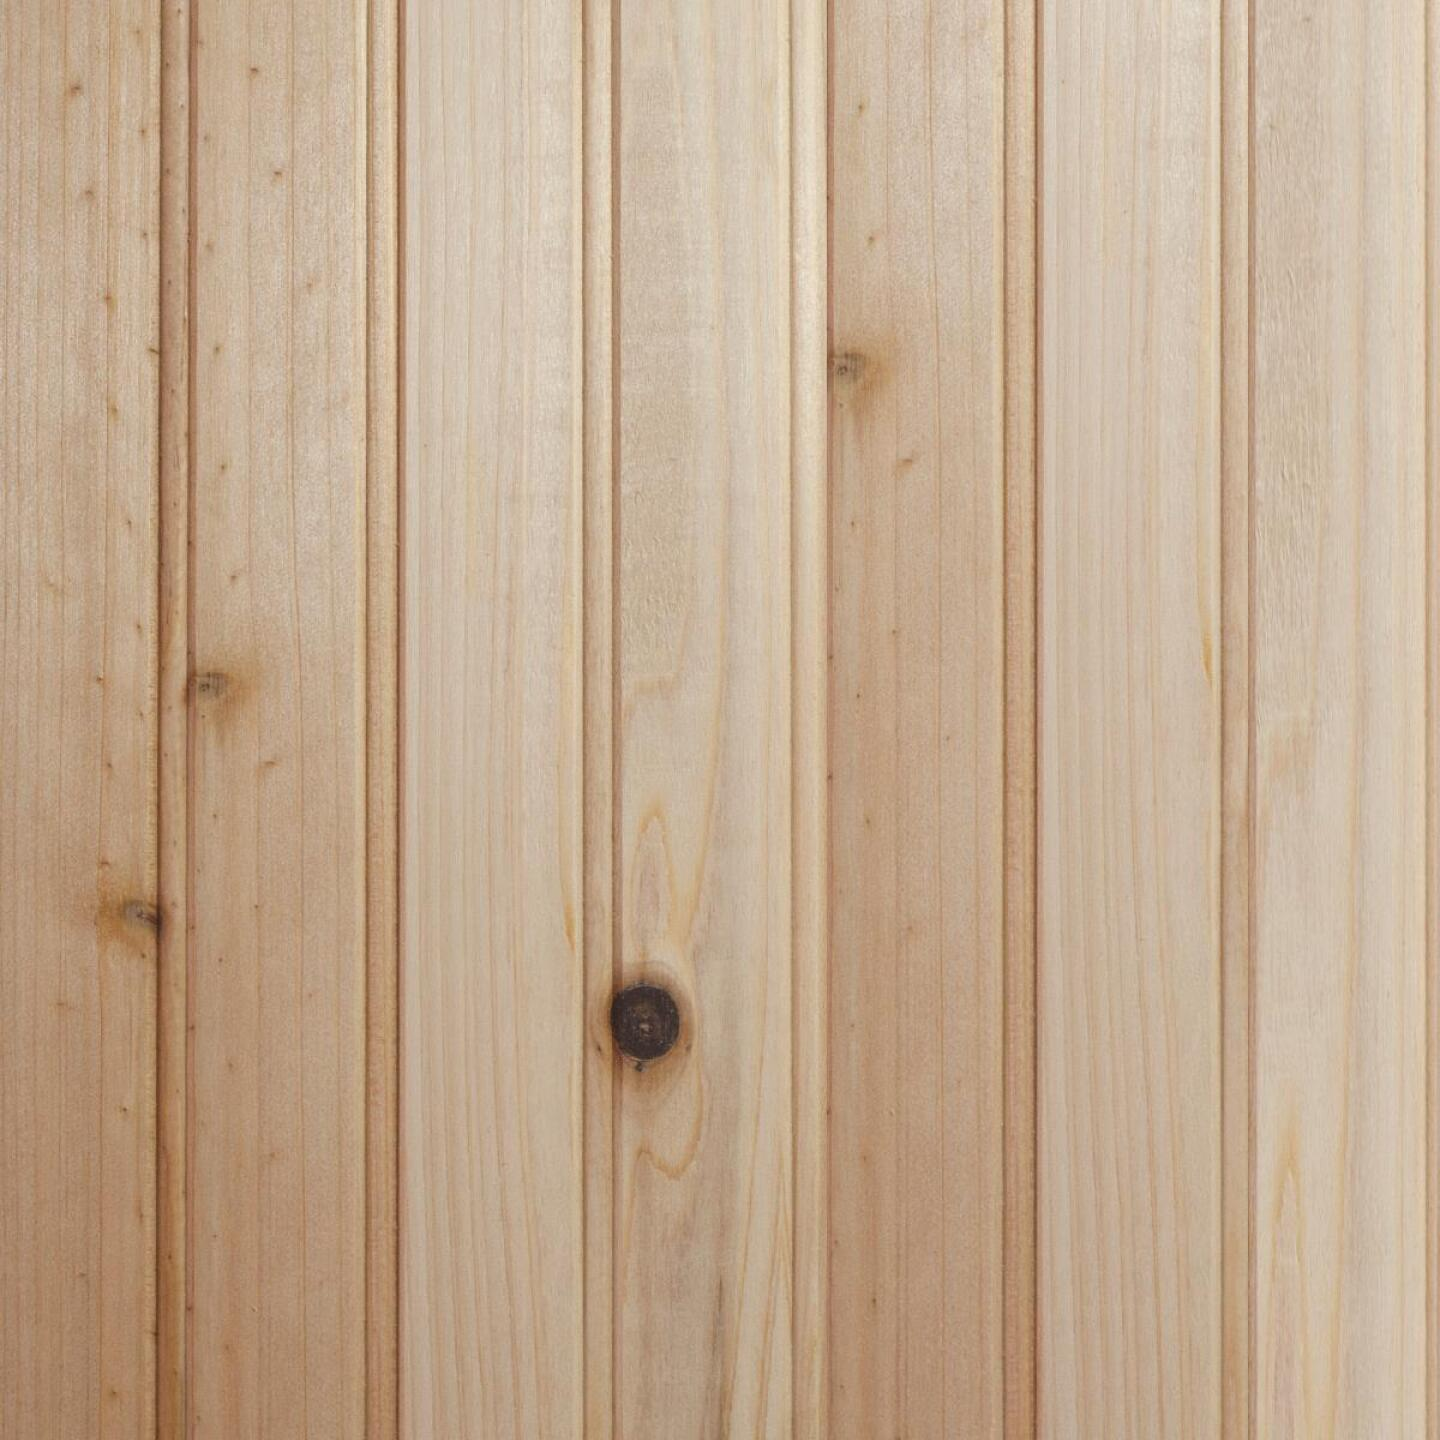 Global Product Sourcing 3-1/2 In. W. x 8 Ft. L. x 1/4 In. Thick Knotty Cedar Reversible Profile Wall Plank (6-Pack) Image 1